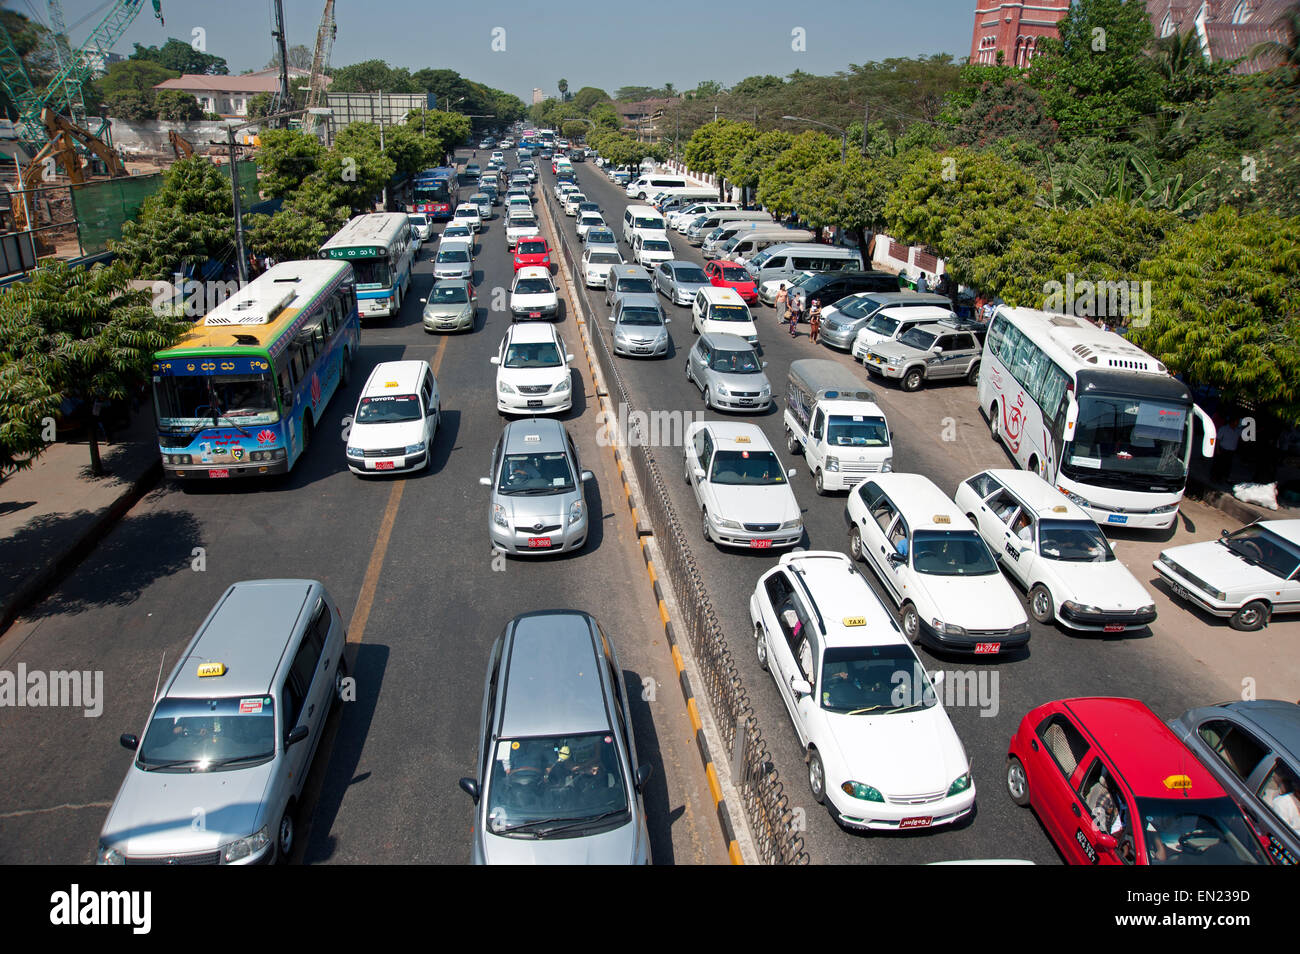 yangon traffic congestion stock photos yangon traffic congestion stock images alamy. Black Bedroom Furniture Sets. Home Design Ideas